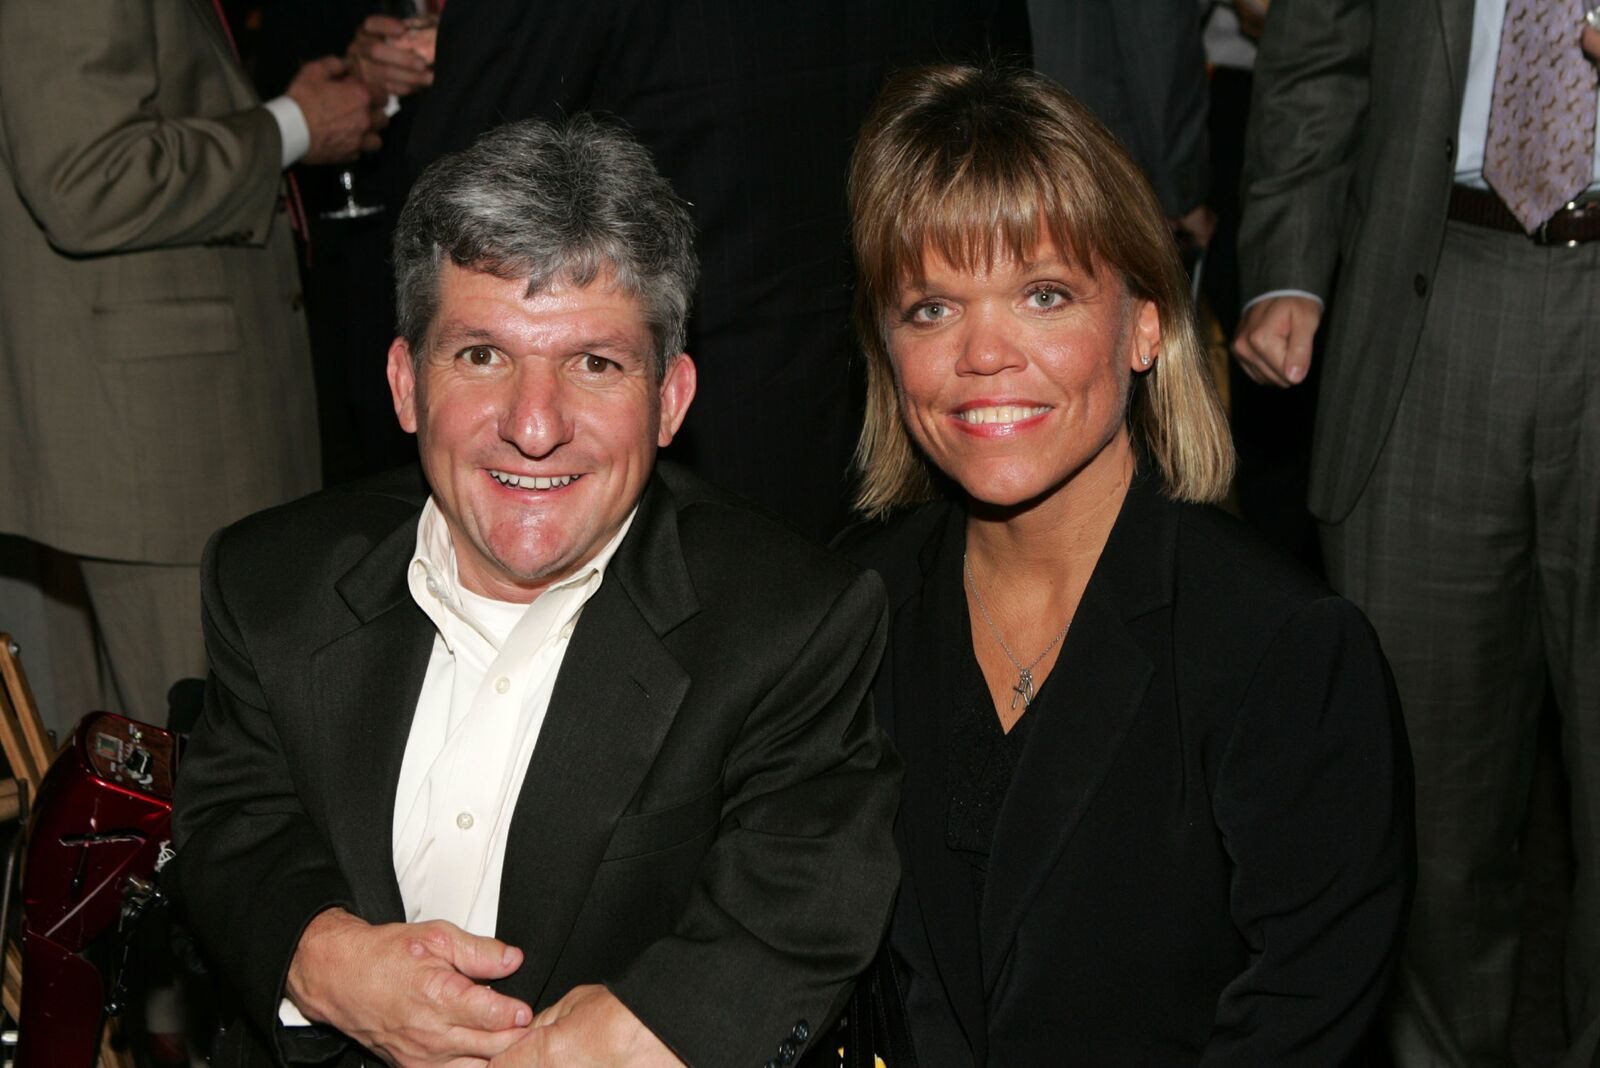 Matt and Amy Roloff attend the Discovery Upfront Presentation NY - Talent Images at the Frederick P. Rose Hall on April 23, 2008.   Photo: Getty Images